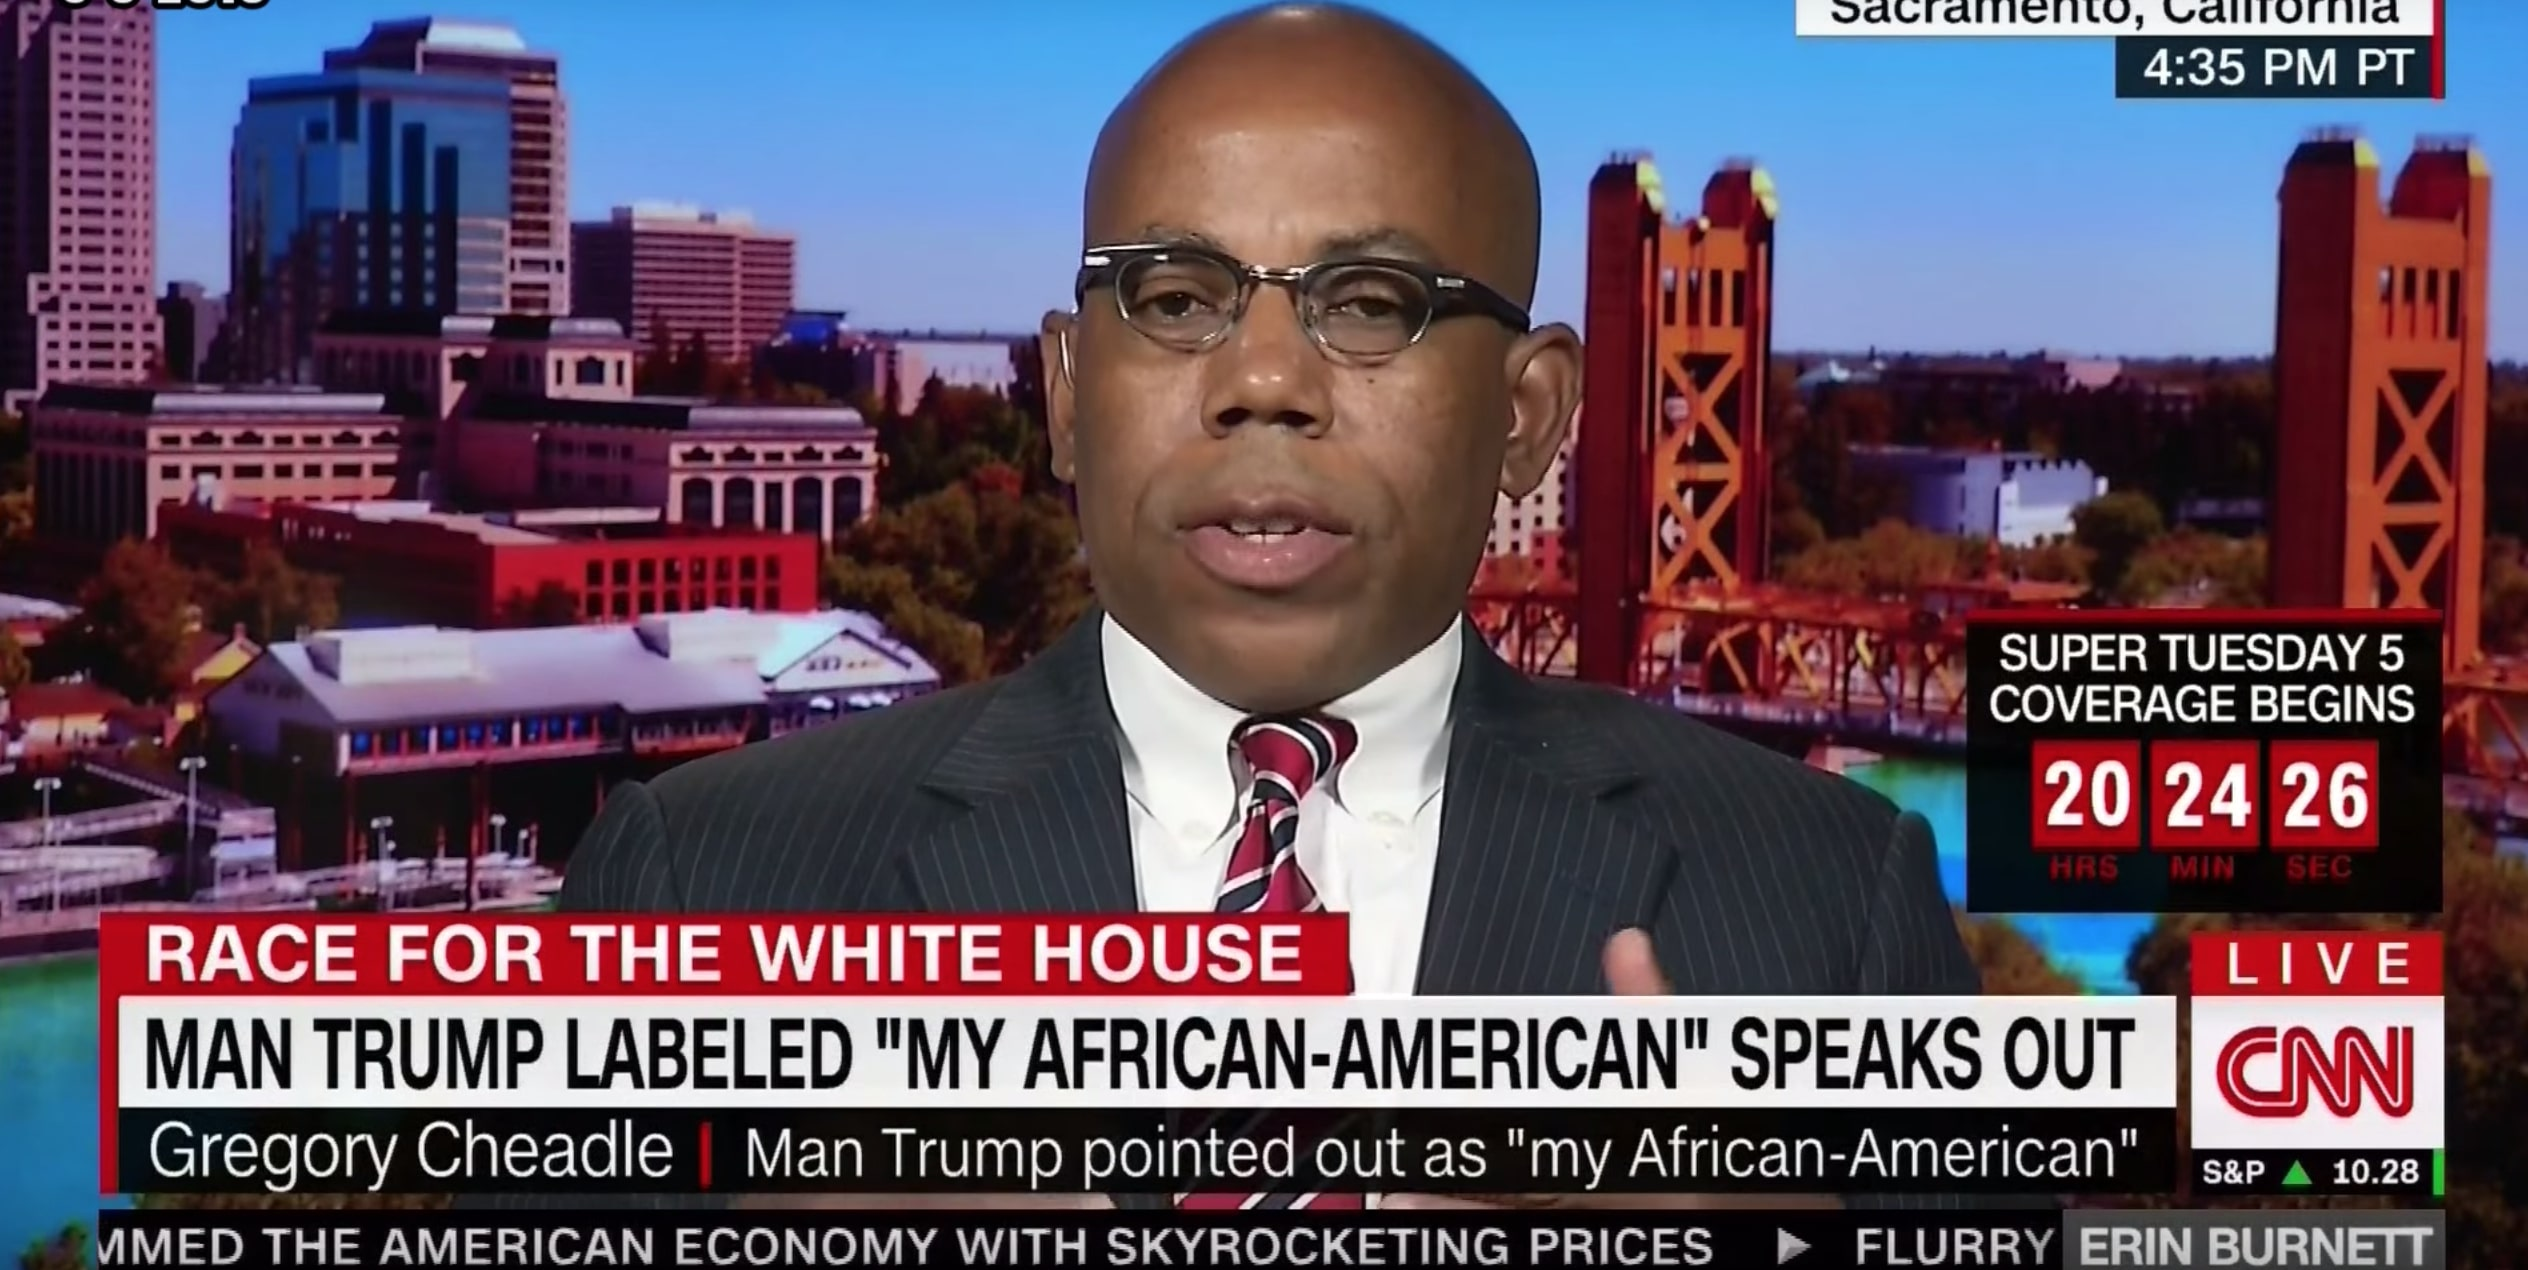 Man Trump Called 'My African-American' Quits GOP, Launches House Bid: Trump Has a 'White Superiority Complex'